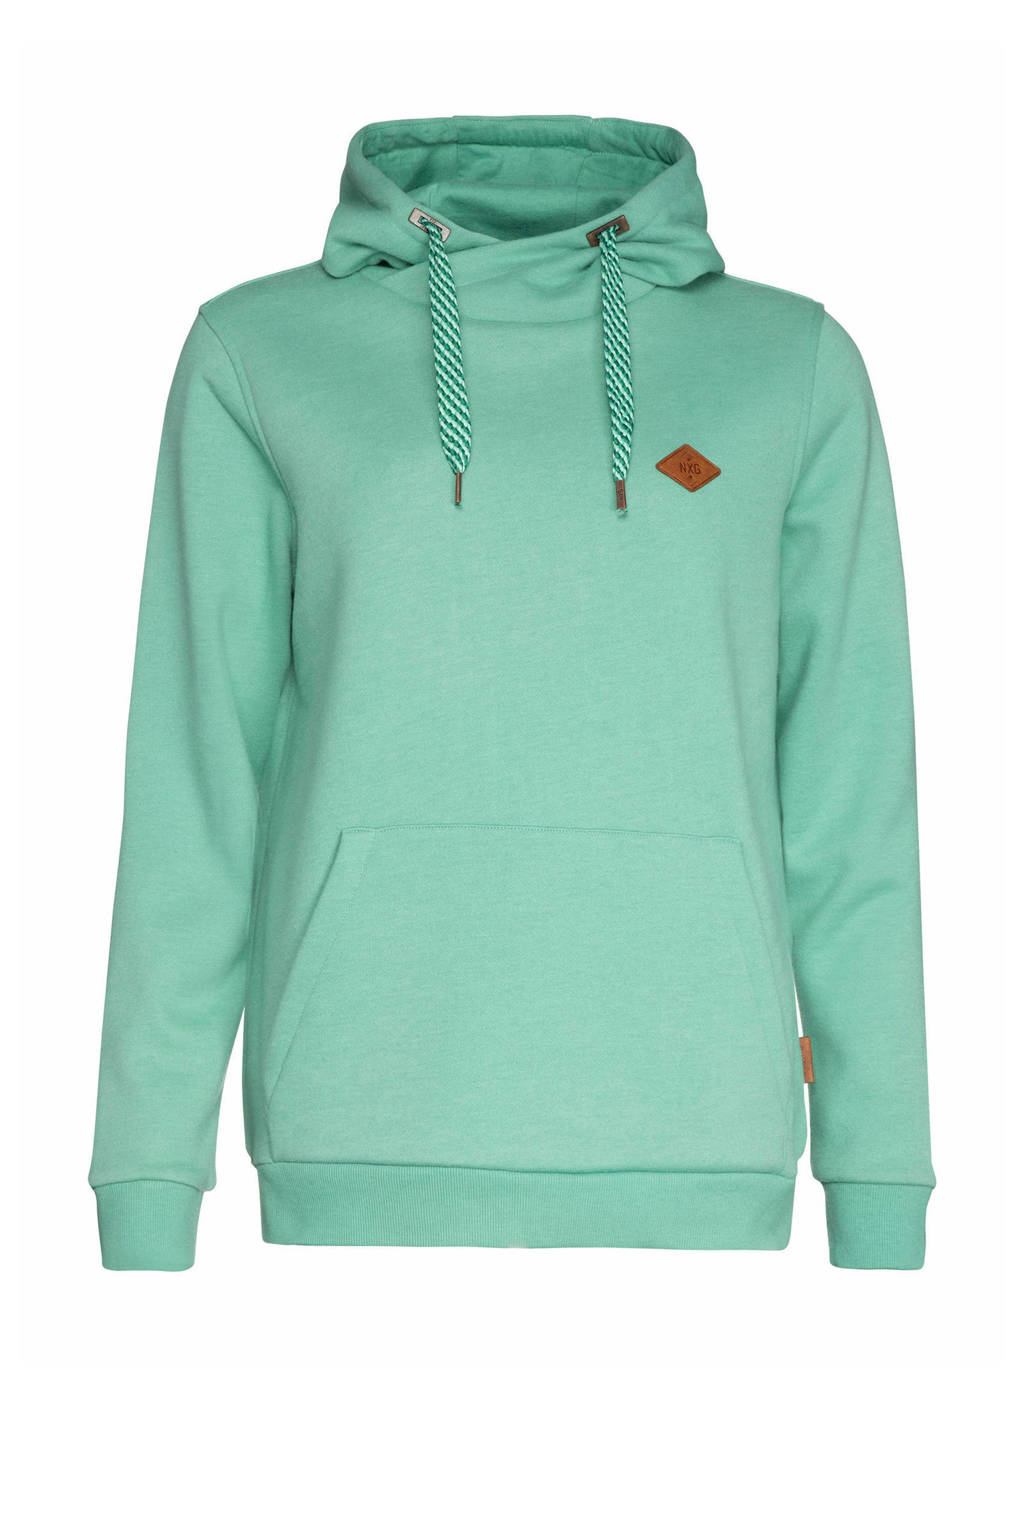 NXG by Protest hoodie dream, Dream